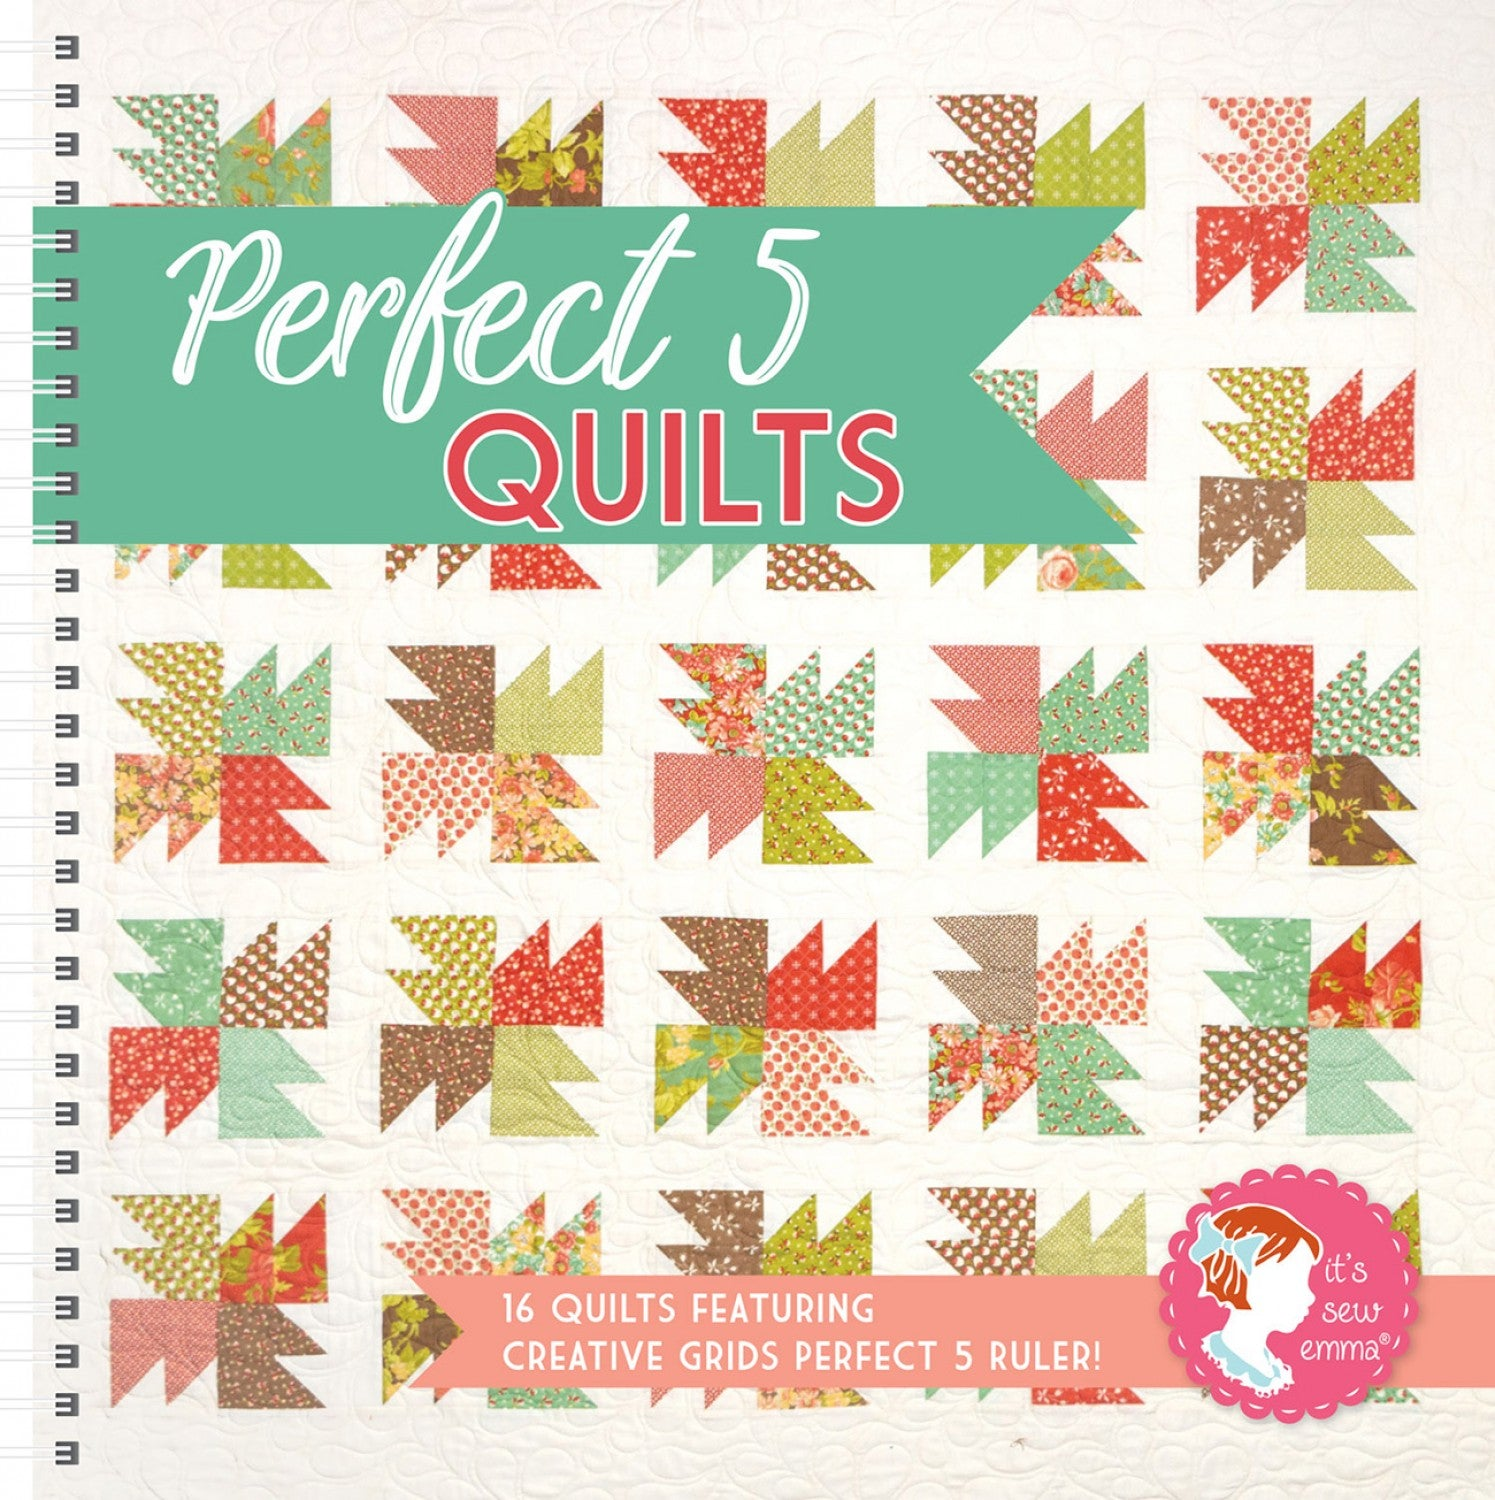 Perfect 5 pattern book